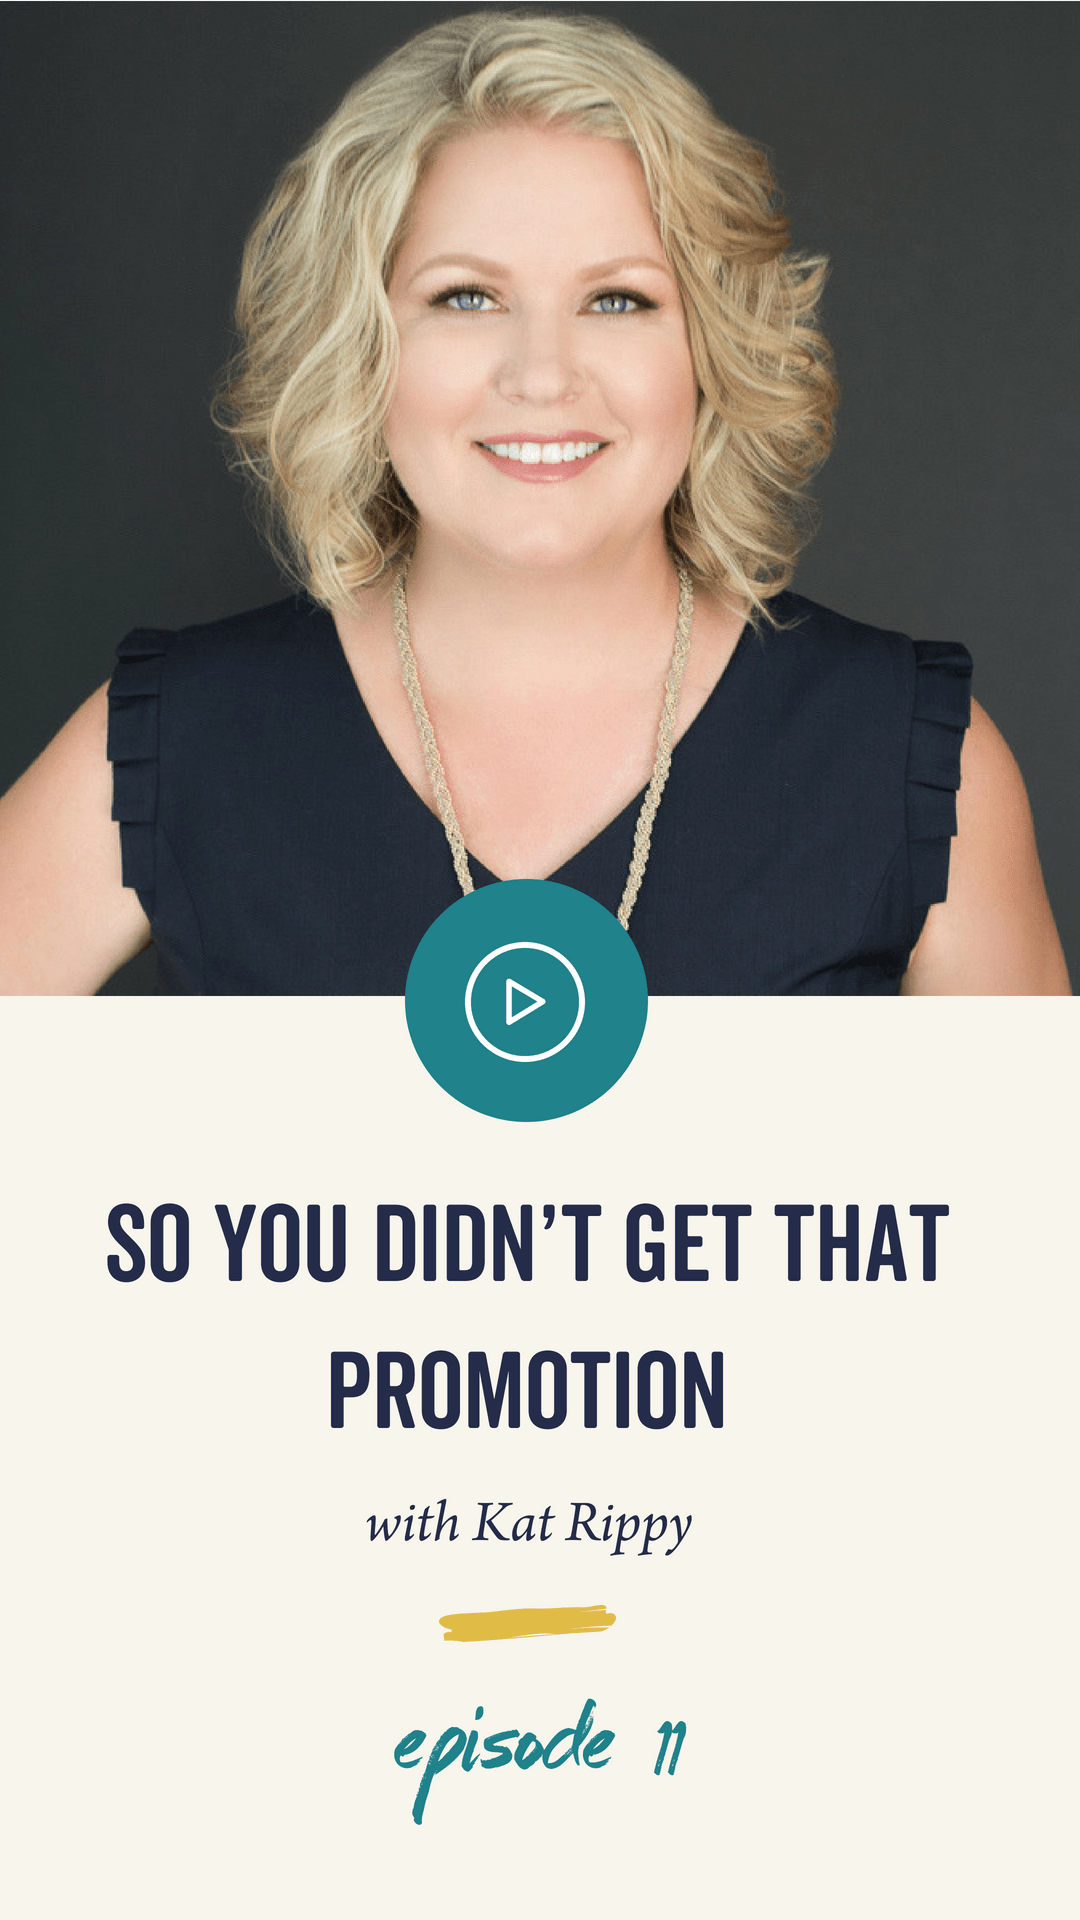 Episode 11: So You Didn't Get That Promotion